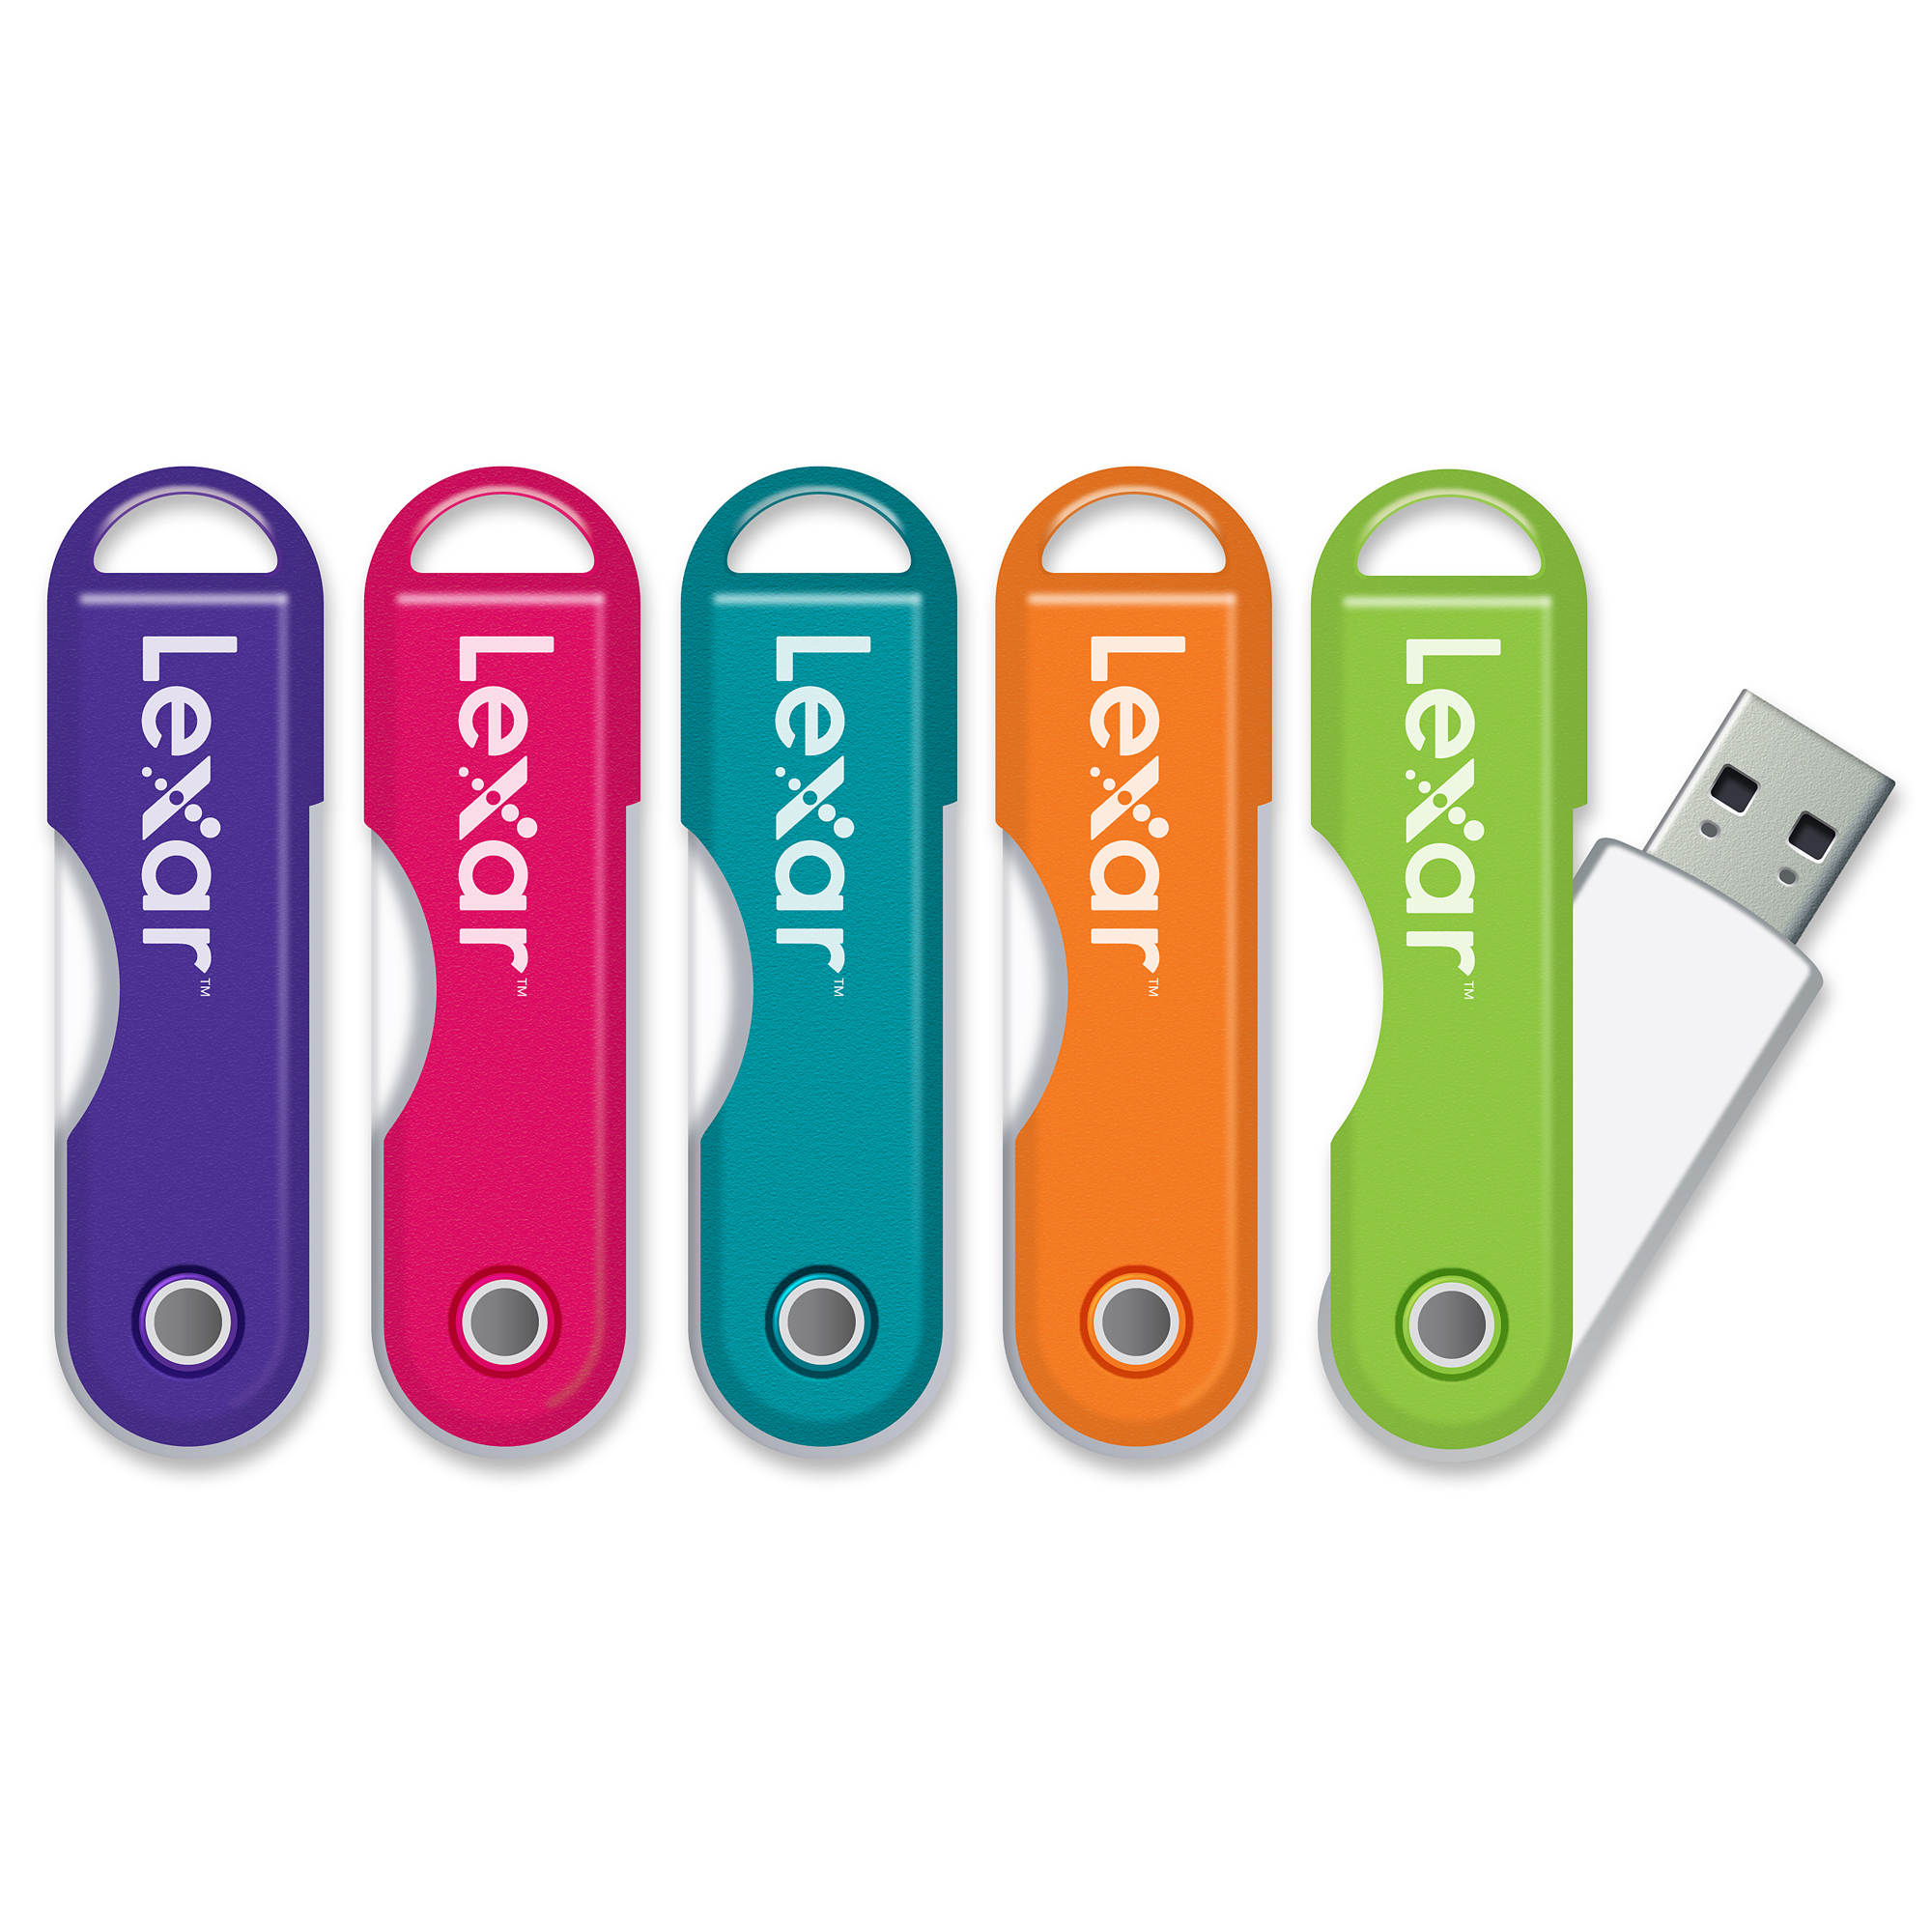 Lexar® JumpDrive® TwistTurn USB 2.0 Flash Drive, 8GB, Assorted Colors (No Color Choice)